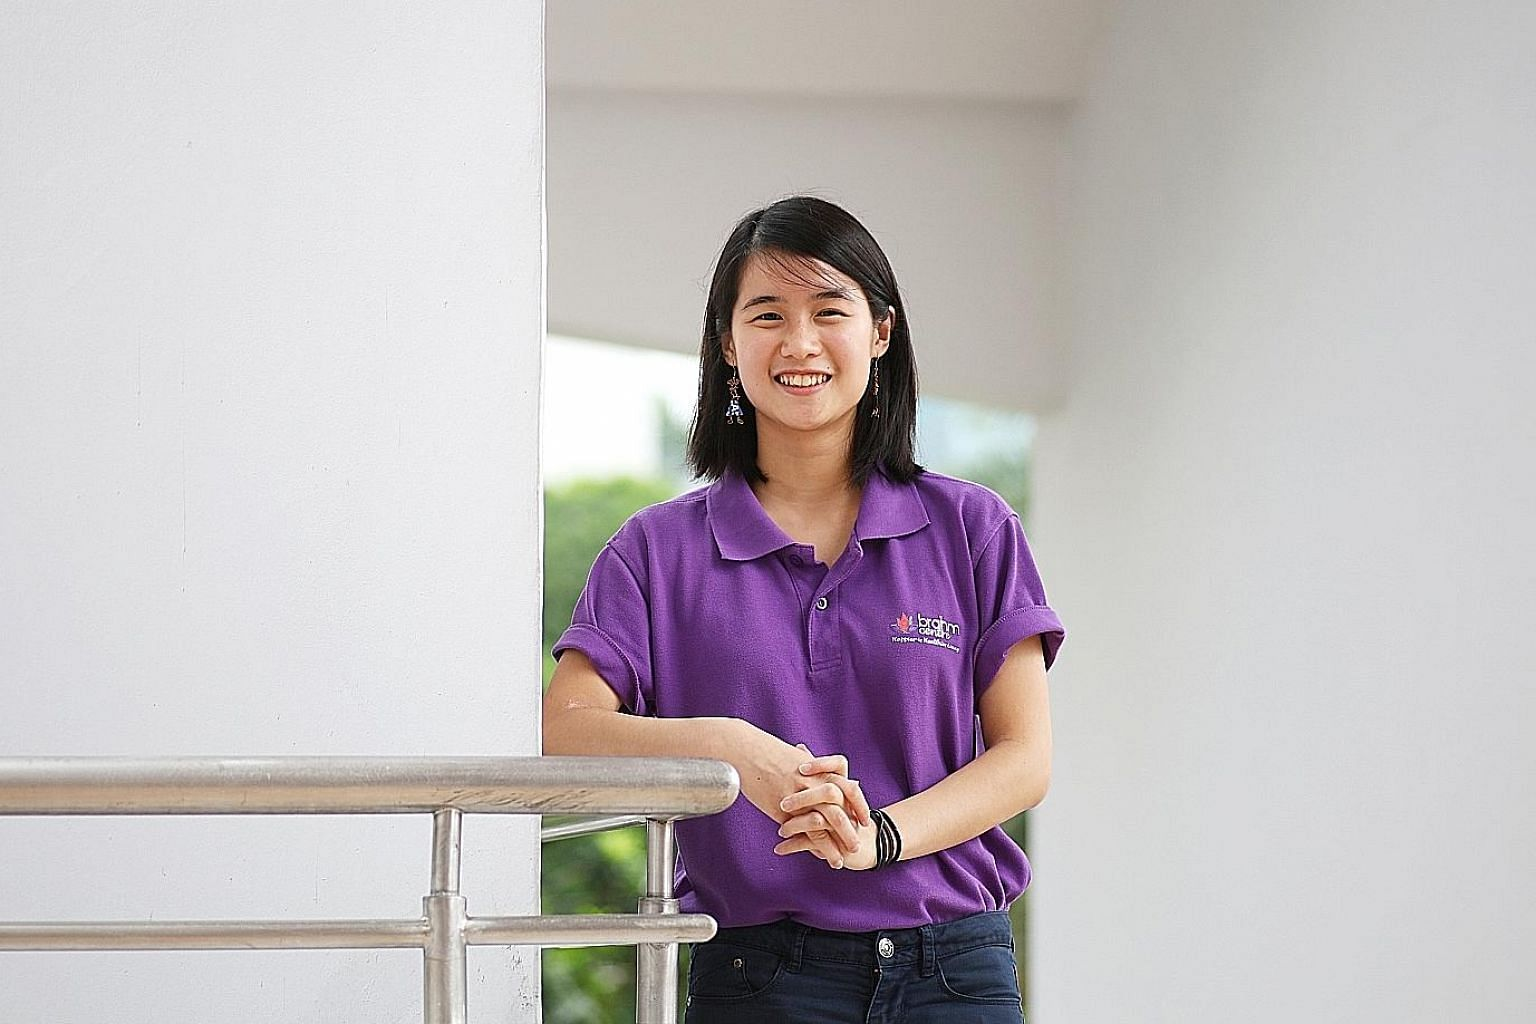 Ms Chew Chia Shao Wei works as an assistant care coordinator at Brahm Centre. She visits the homes of elderly residents who have, or are at risk of having, mental illnesses, assesses their needs and coordinates the help given. She also conducts resea